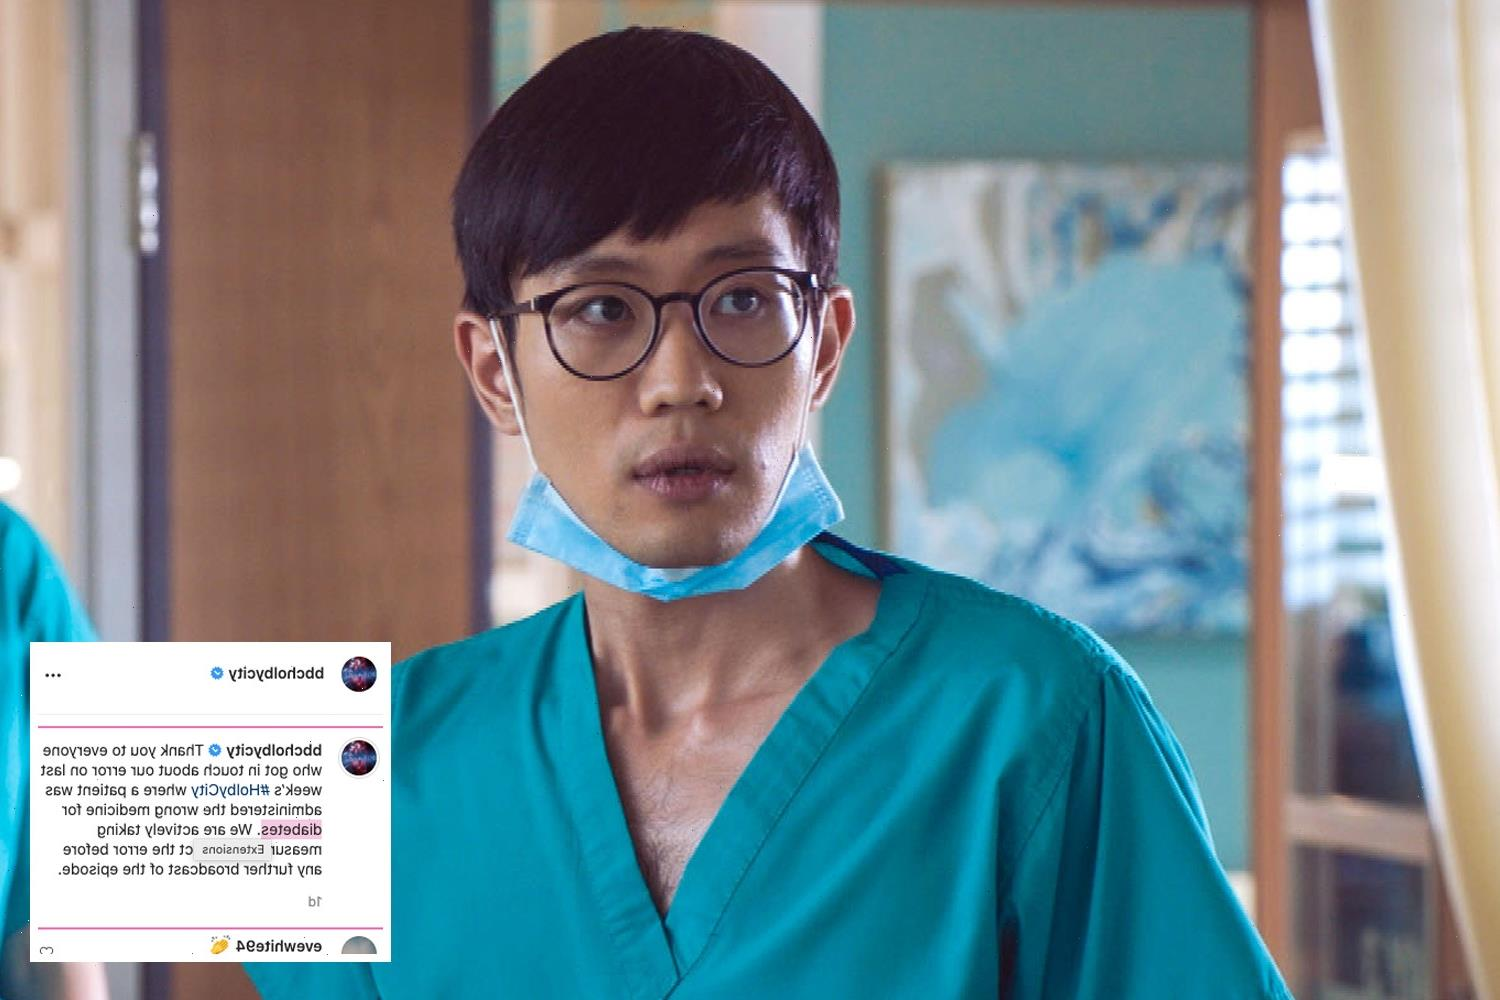 Holby City bosses forced to apologise after diabetic blunder on screen